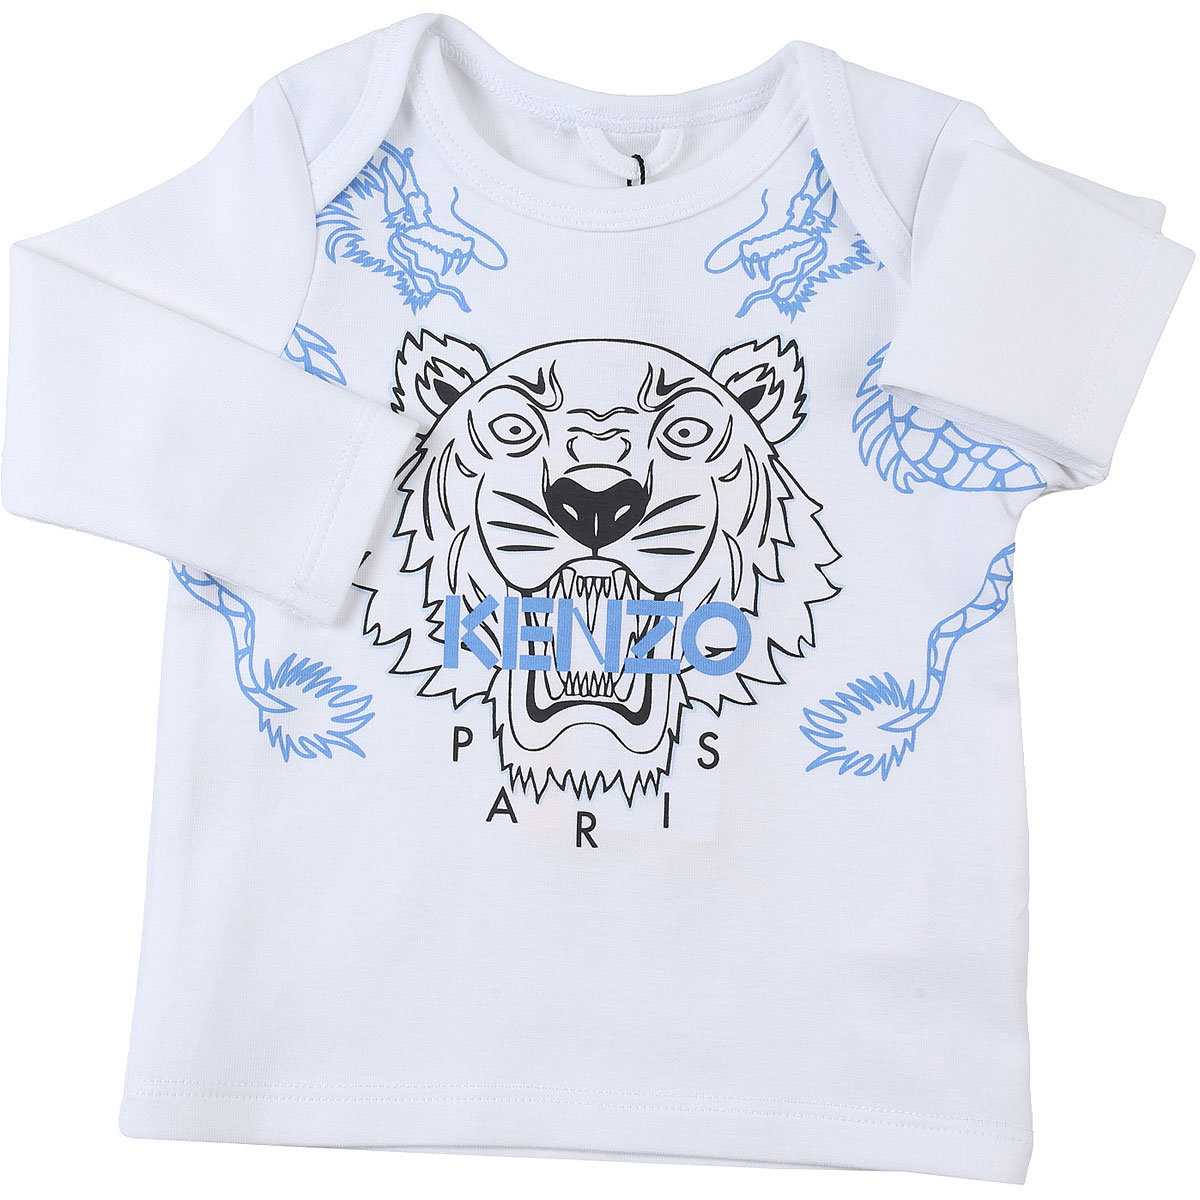 Kenzo Baby T-Shirt for Boys On Sale, White, Cotton, 2019, 12 M 18M 3M 6M 9M